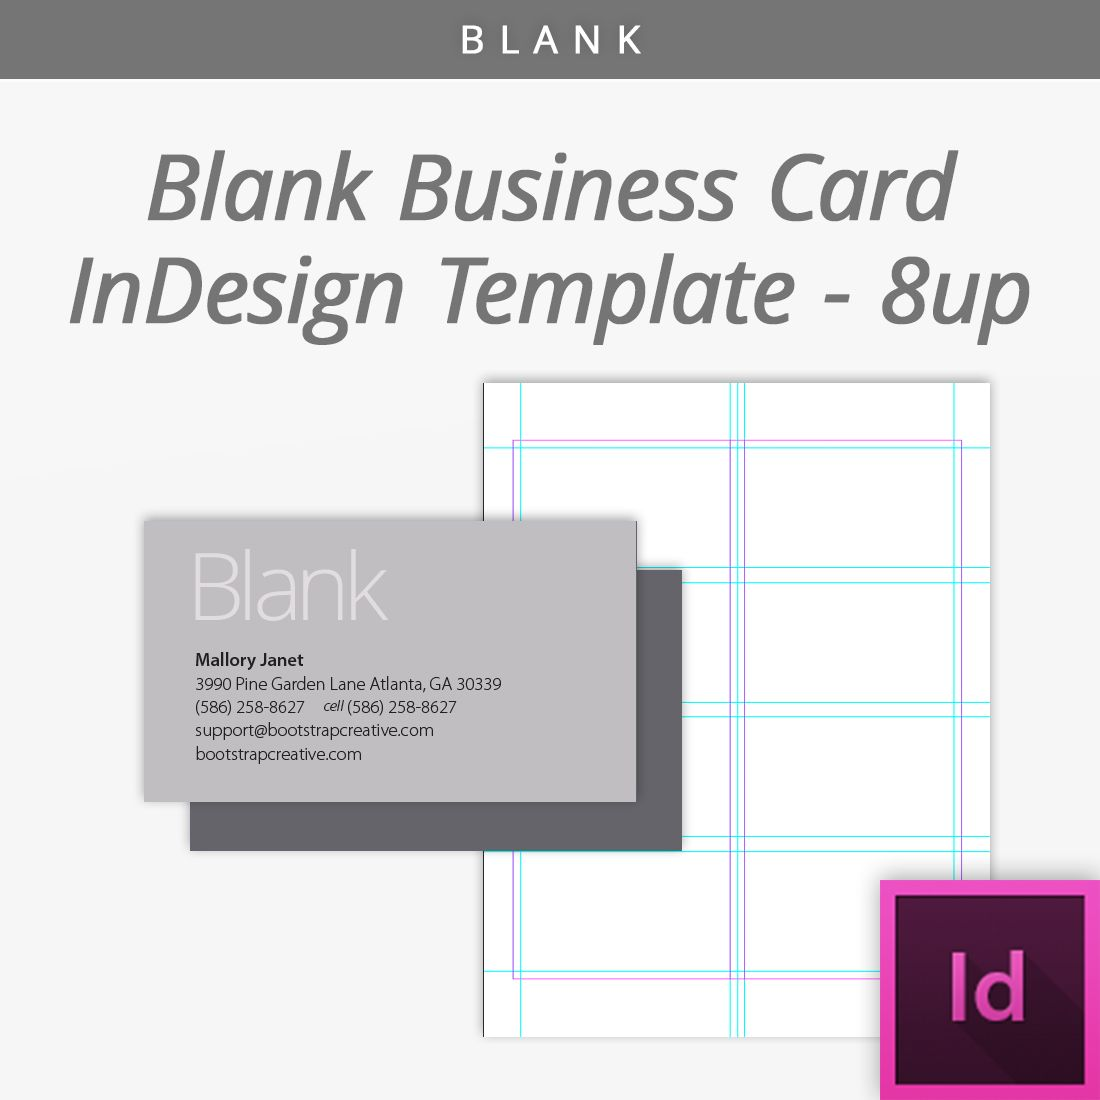 Indesign business card templates image collections templates blank indesign business card template 8 up free download blank indesign business card template 8 up reheart